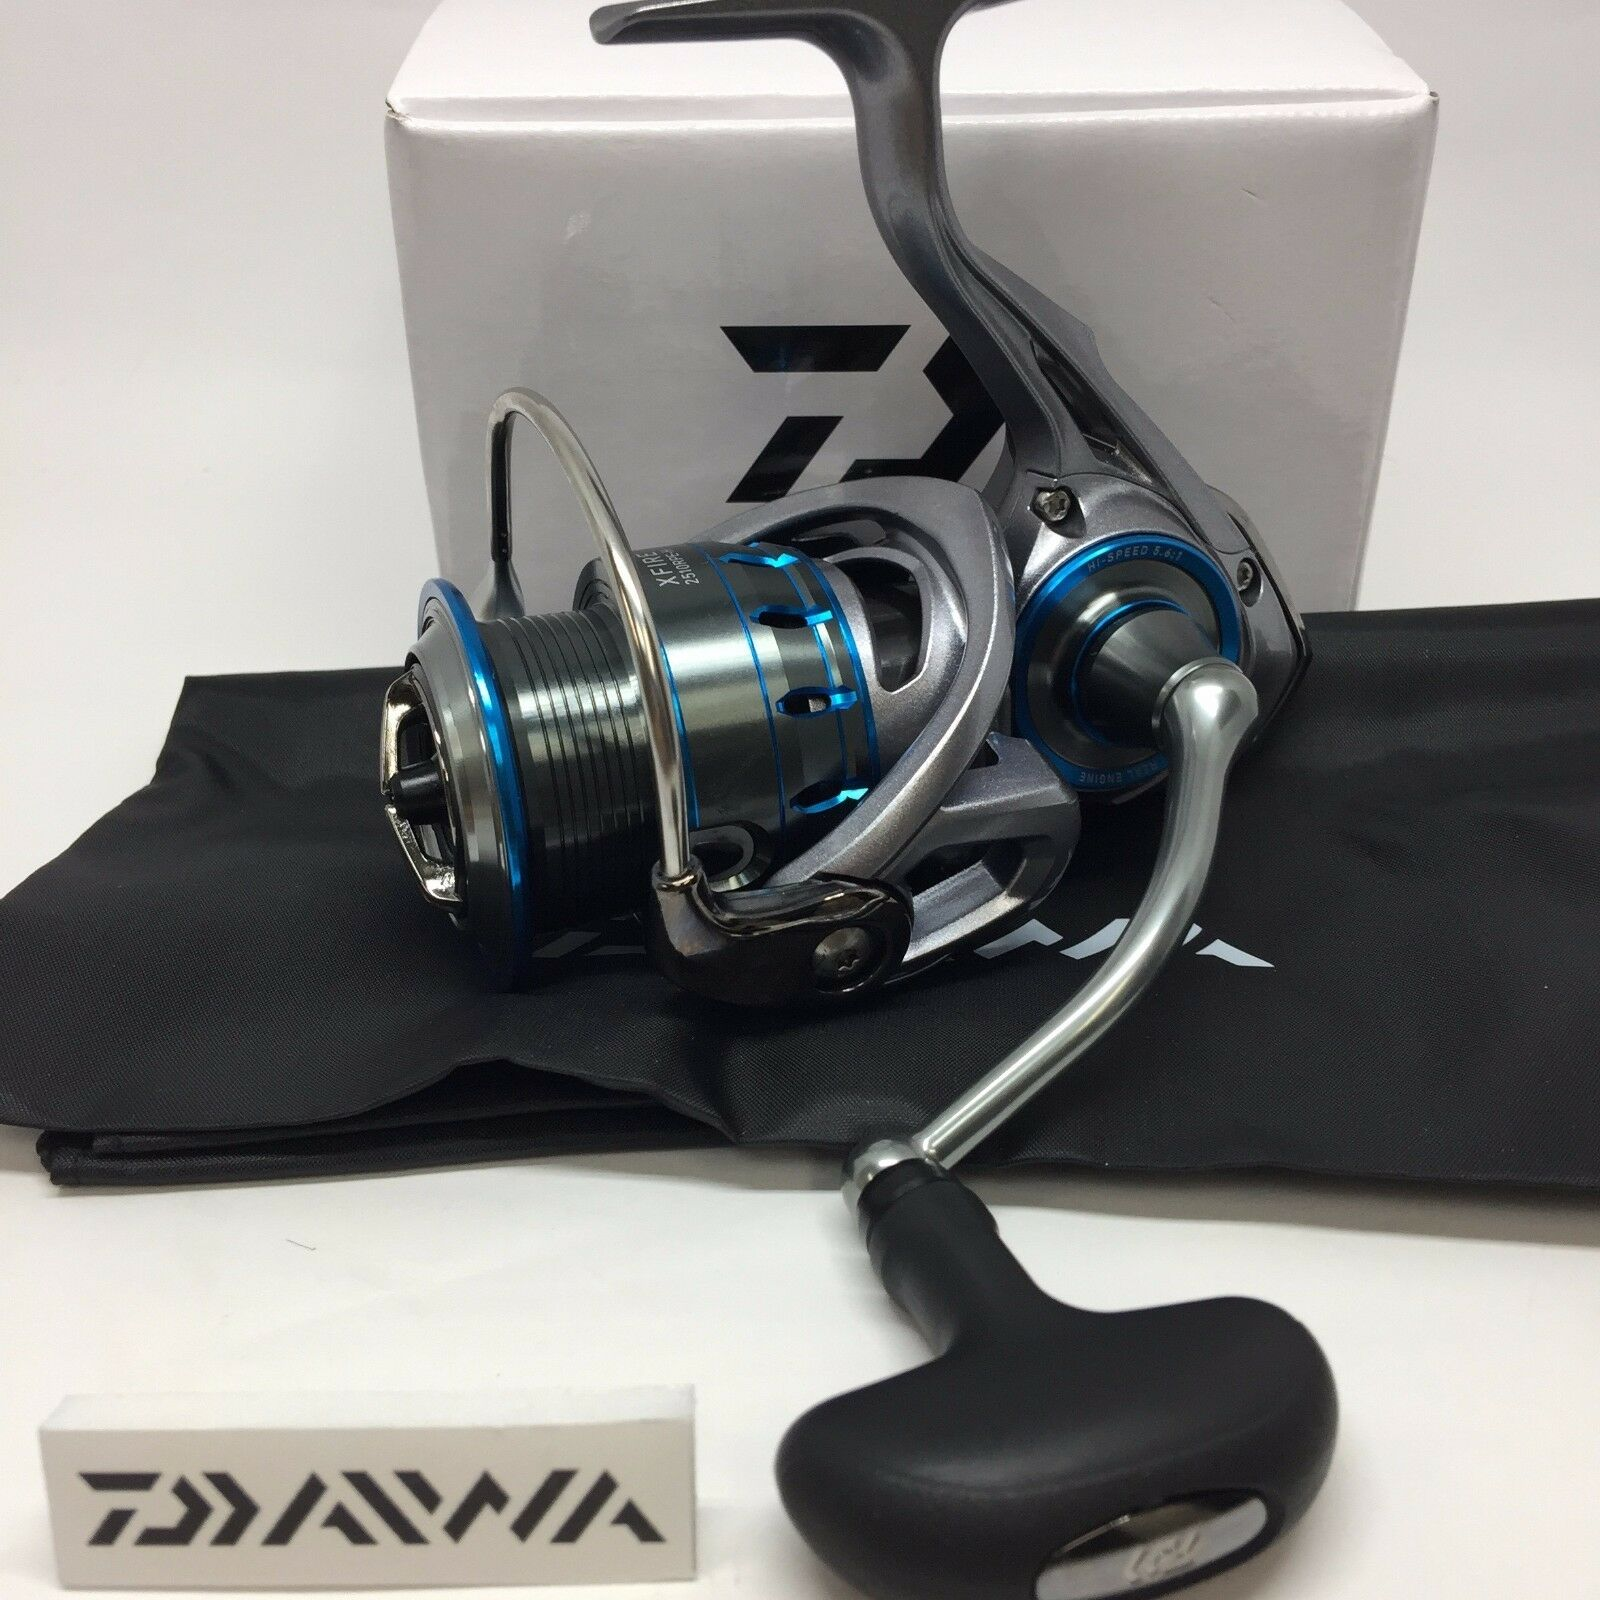 DAIWA 17 X-FIRE 2510R PE-H   - Free Shipping from Japan